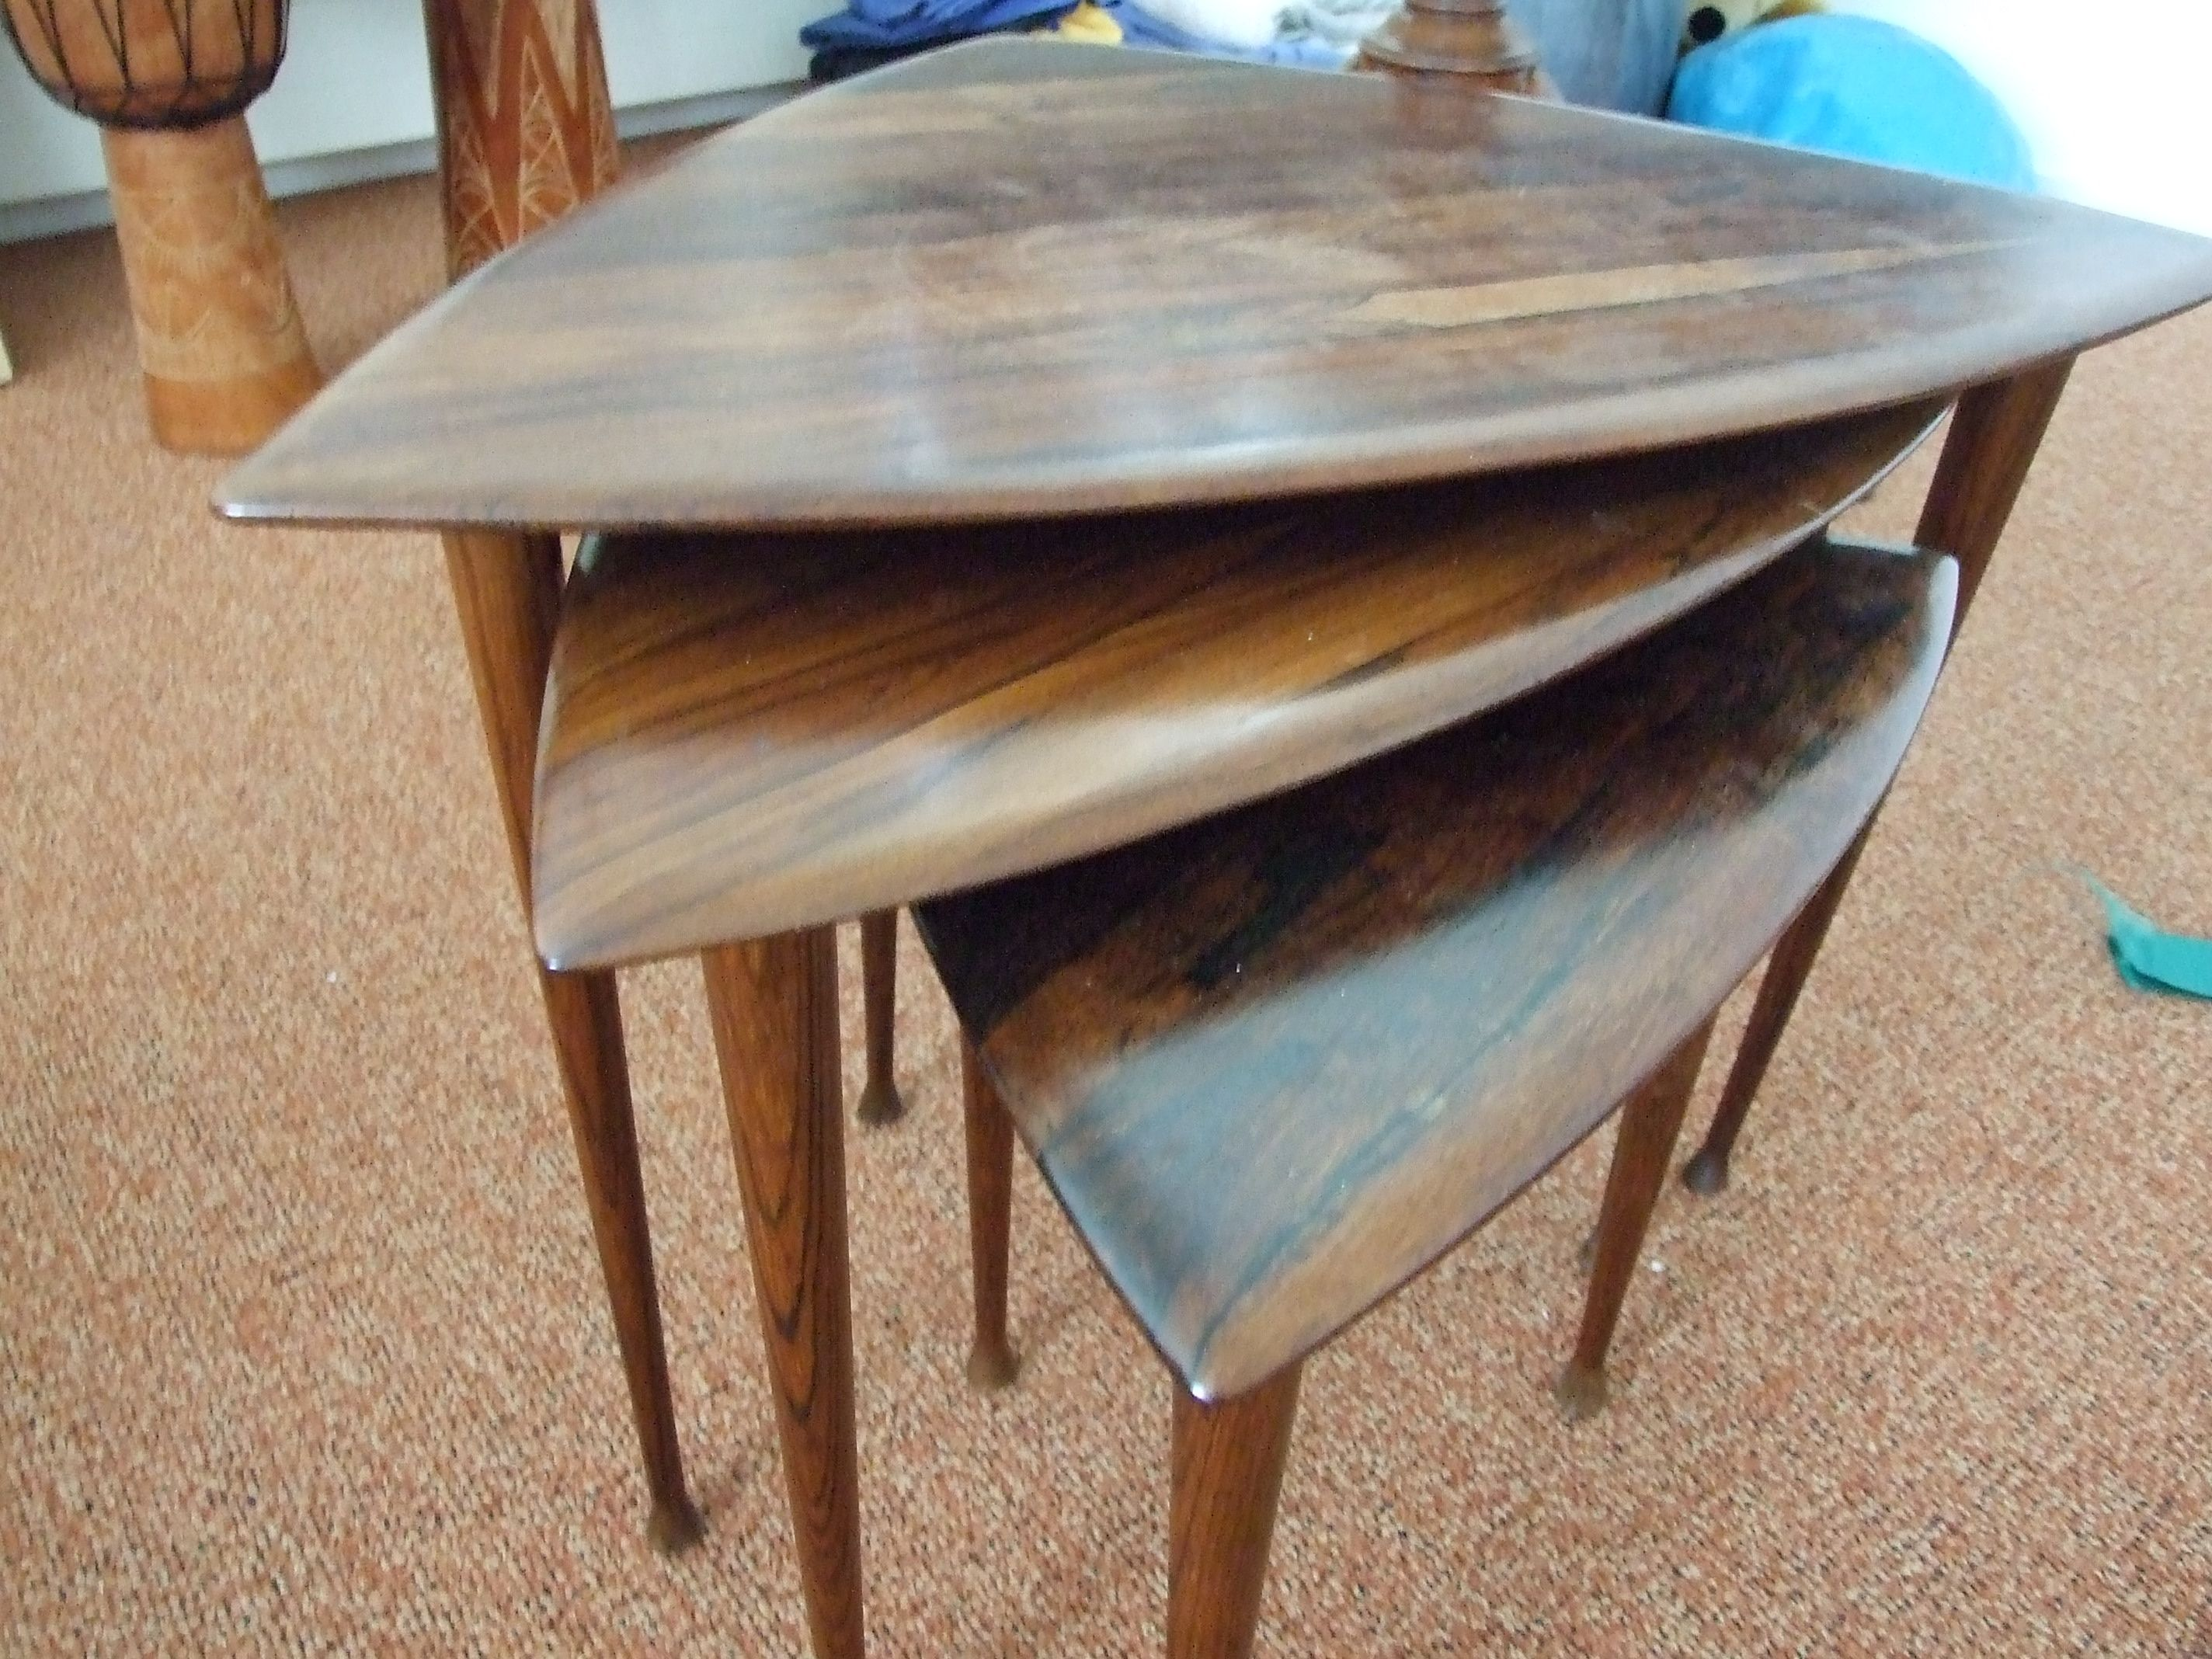 Modernist set of triangular side tables, delicate and well designed